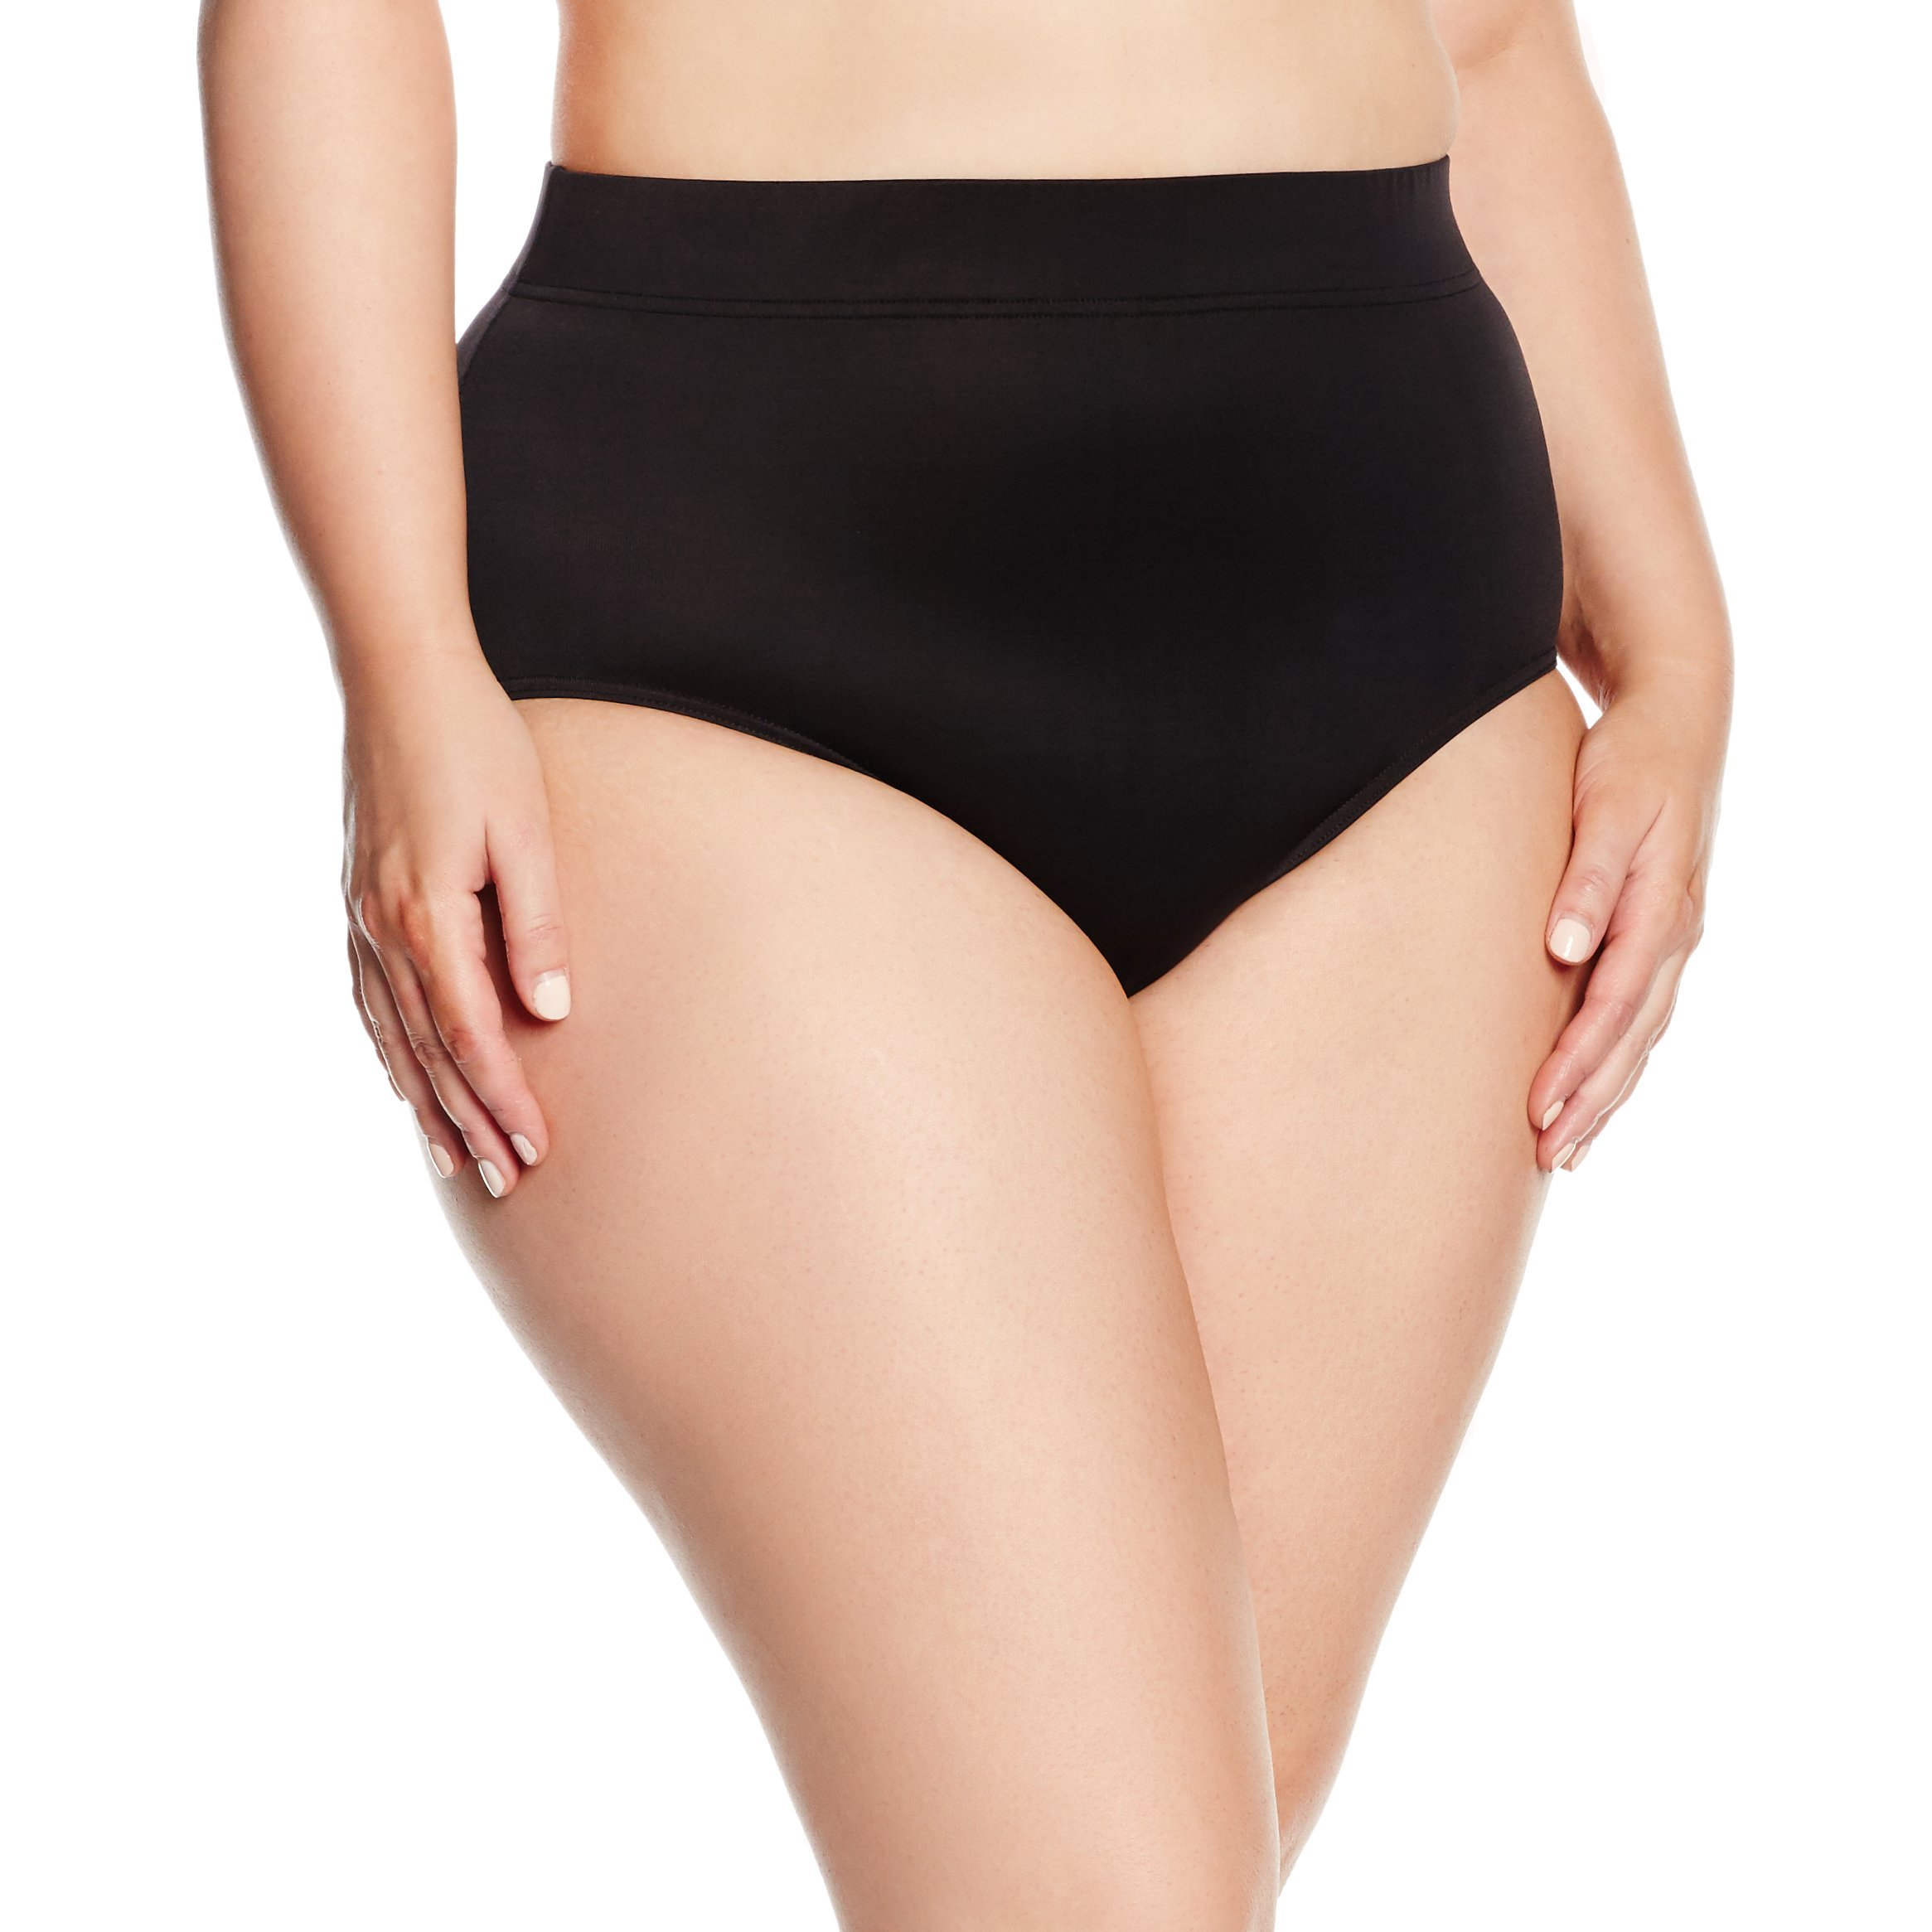 Bas Miraclesuit Pant Fabricant14Femme MaillotNoirFr46taille basic 8n0wXOkP